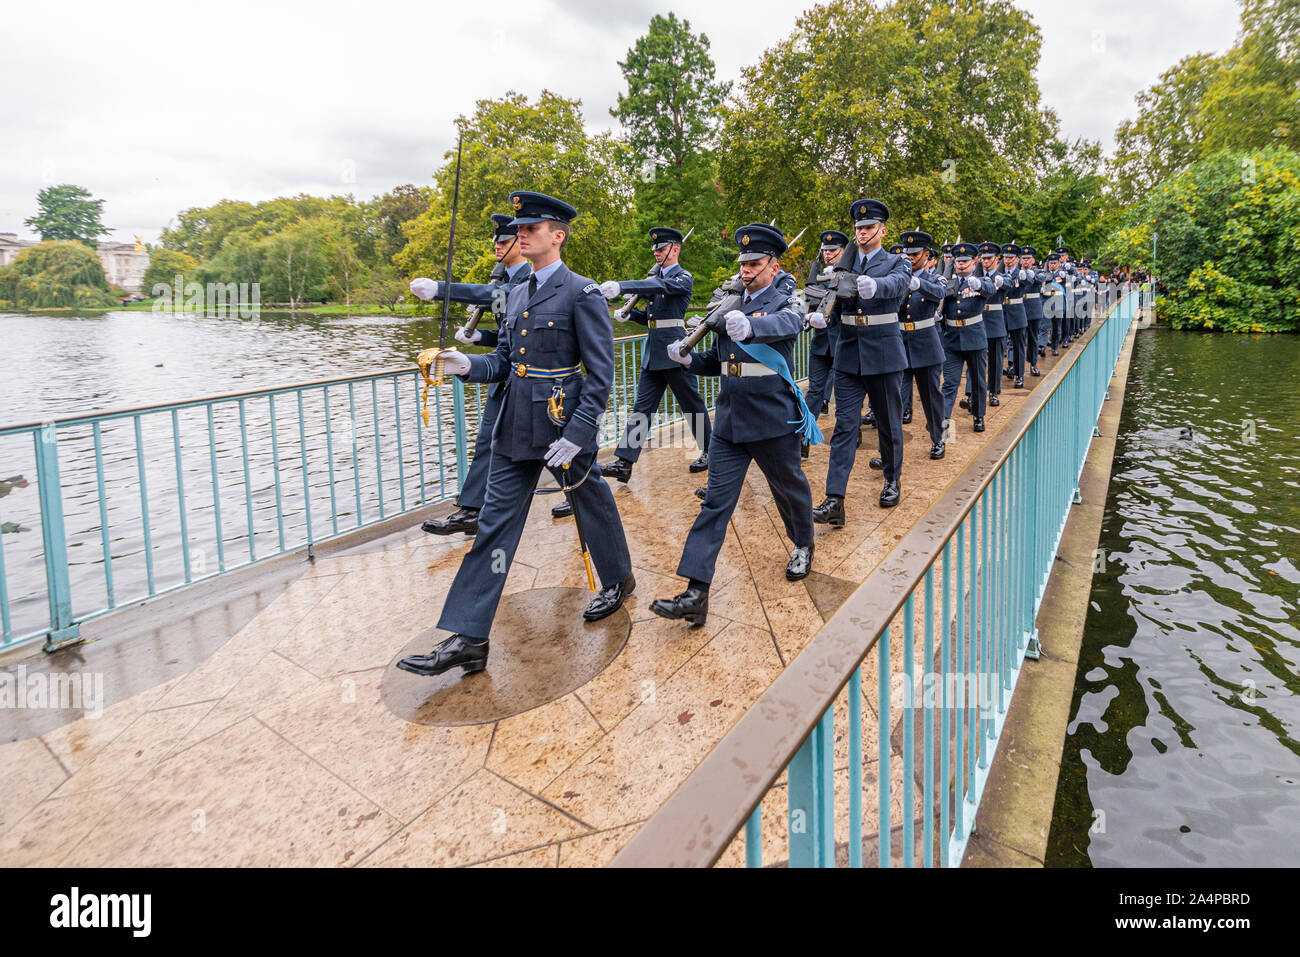 Royal Air Force RAF marching crossing the Blue Bridge in St James's Park near Buckingham Palace after the State opening of Parliament, London, UK Stock Photo